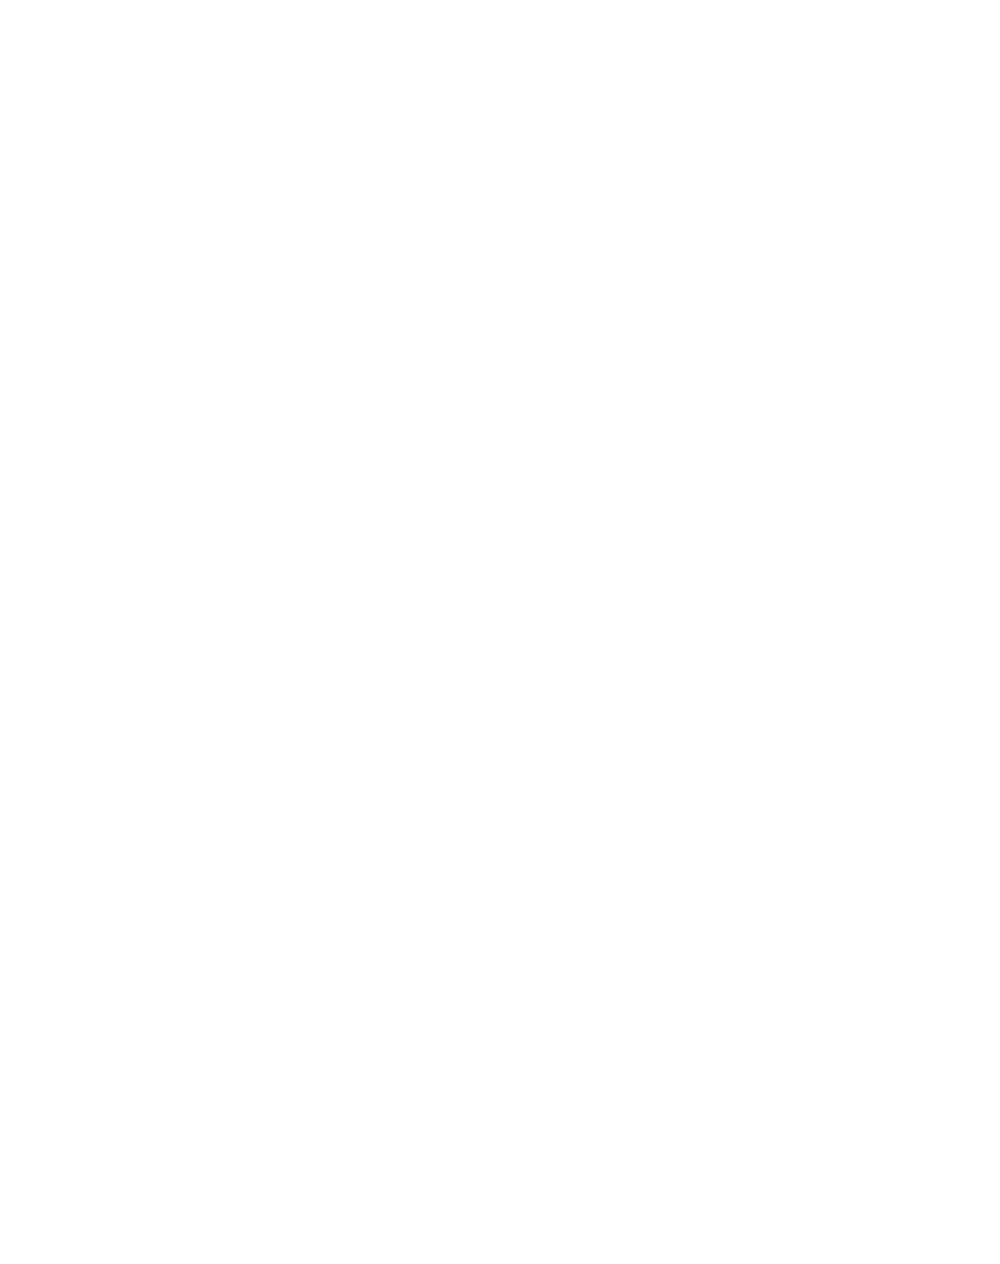 A document with the Scottish Government and the Wallet.Services logo on it.